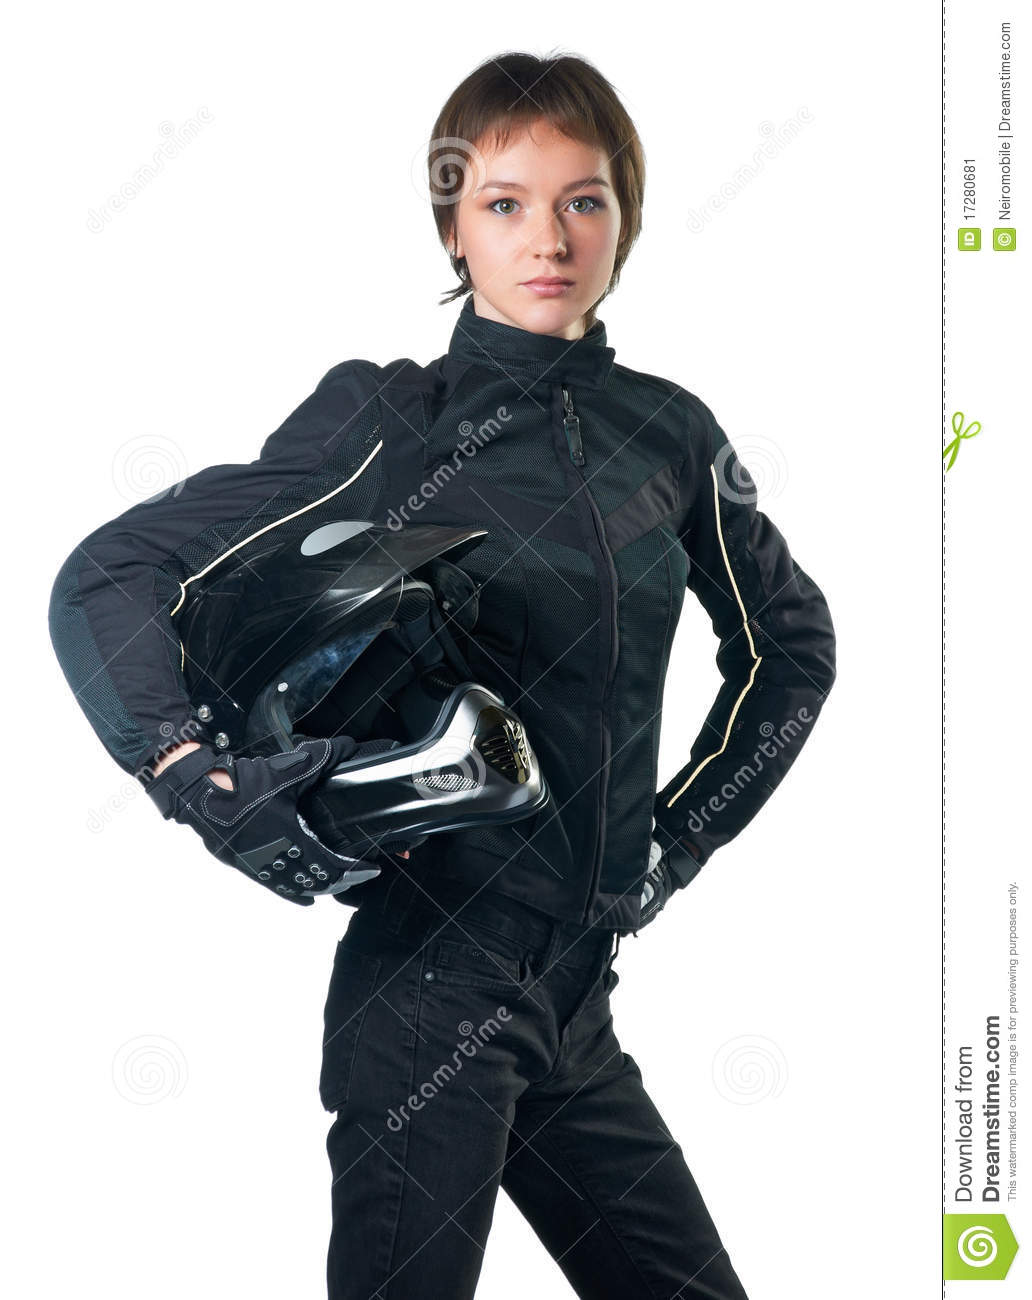 Young woman in black motorcycle clothing holding a helmet. Isolated on